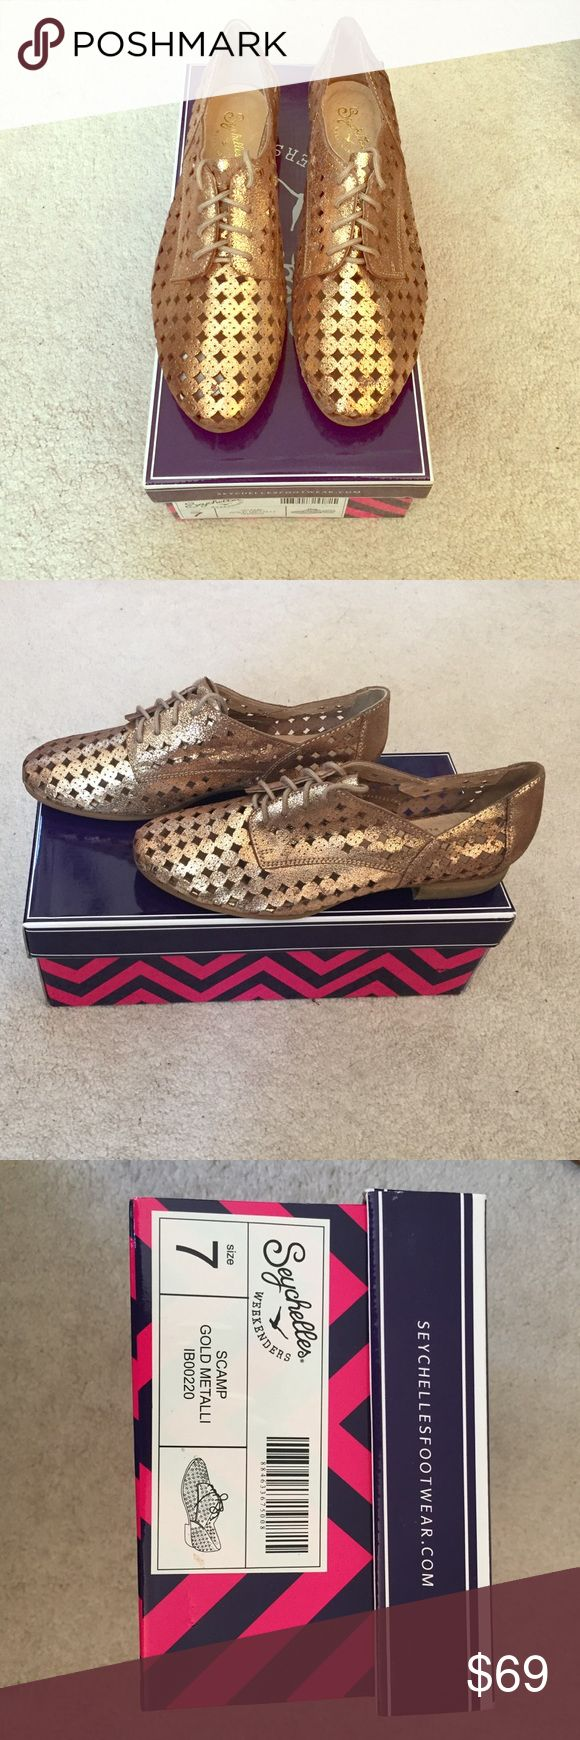 """Seychelles Scamp Metallic Oxford shoes Look no further for the perfect pair of glam oxfords! Metallic gold leather with lace-up front closure, perforated leather upper, leather lining, stacked heel 1"""" (new without tags) Seychelles Shoes Flats & Loafers"""